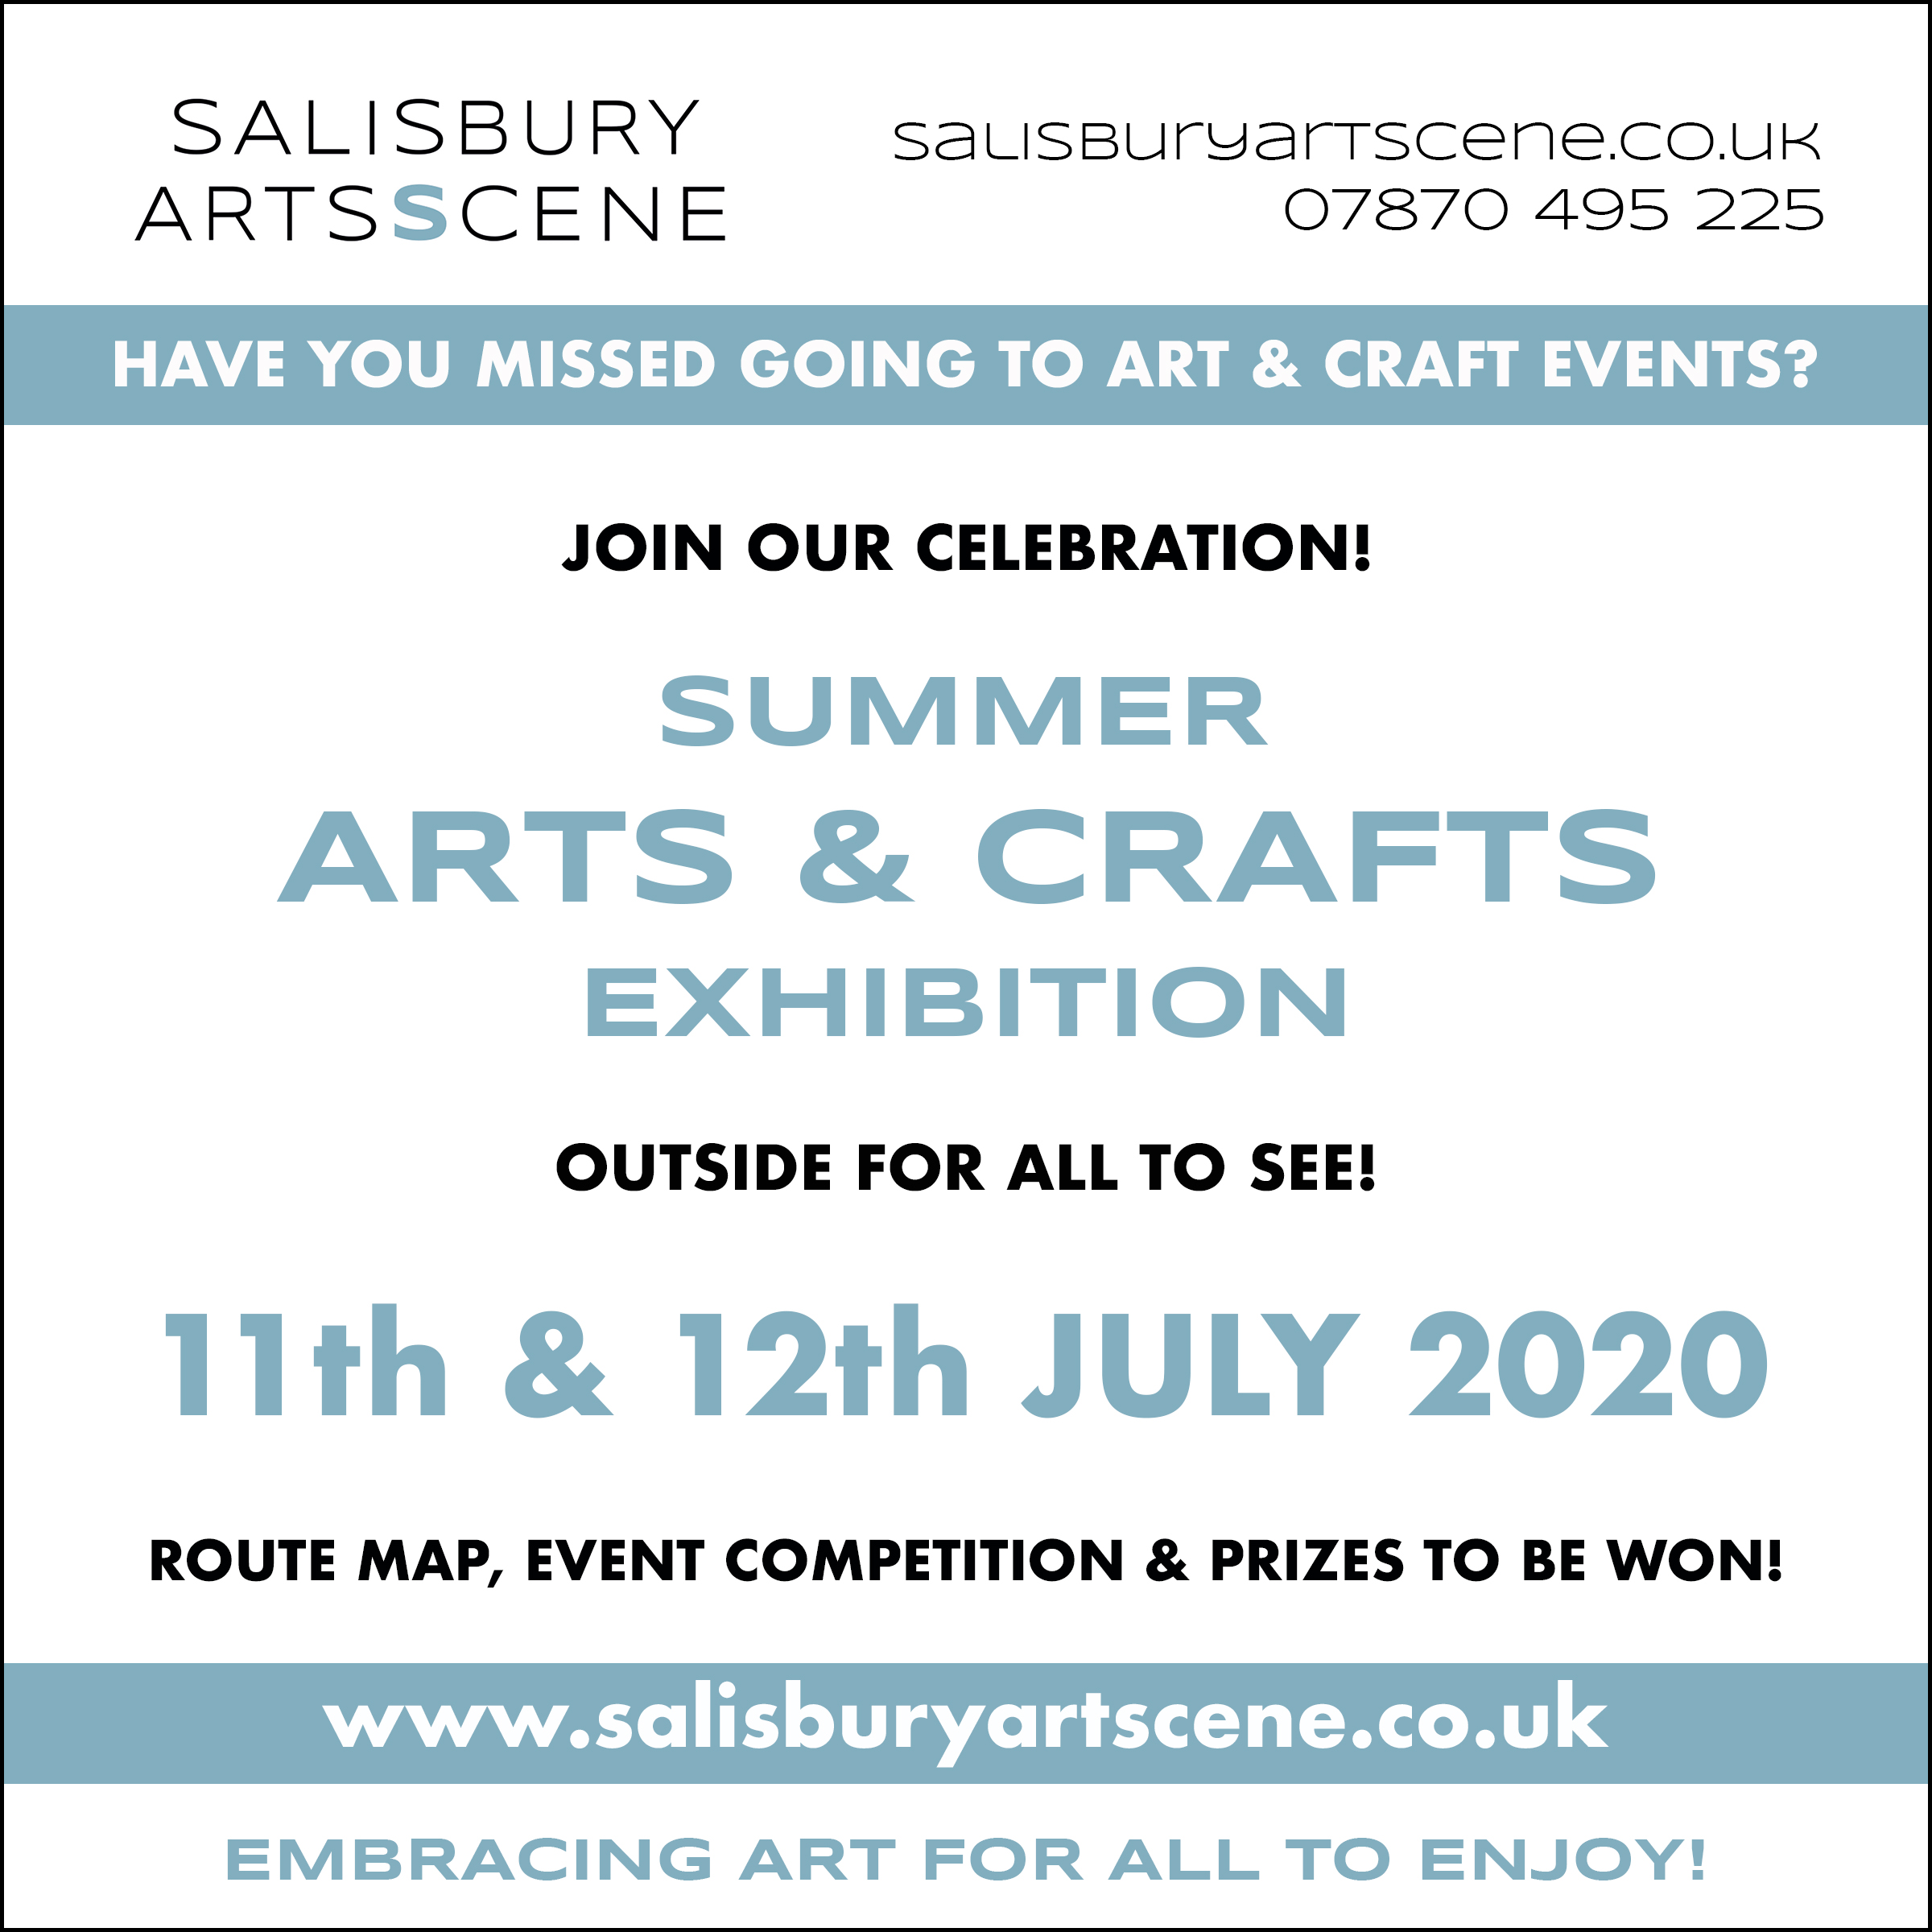 SALISBURY ARTS SCENE - SUMMER ARTS EXHIBITION - OUTSIDE FOR ALL TO SEE!